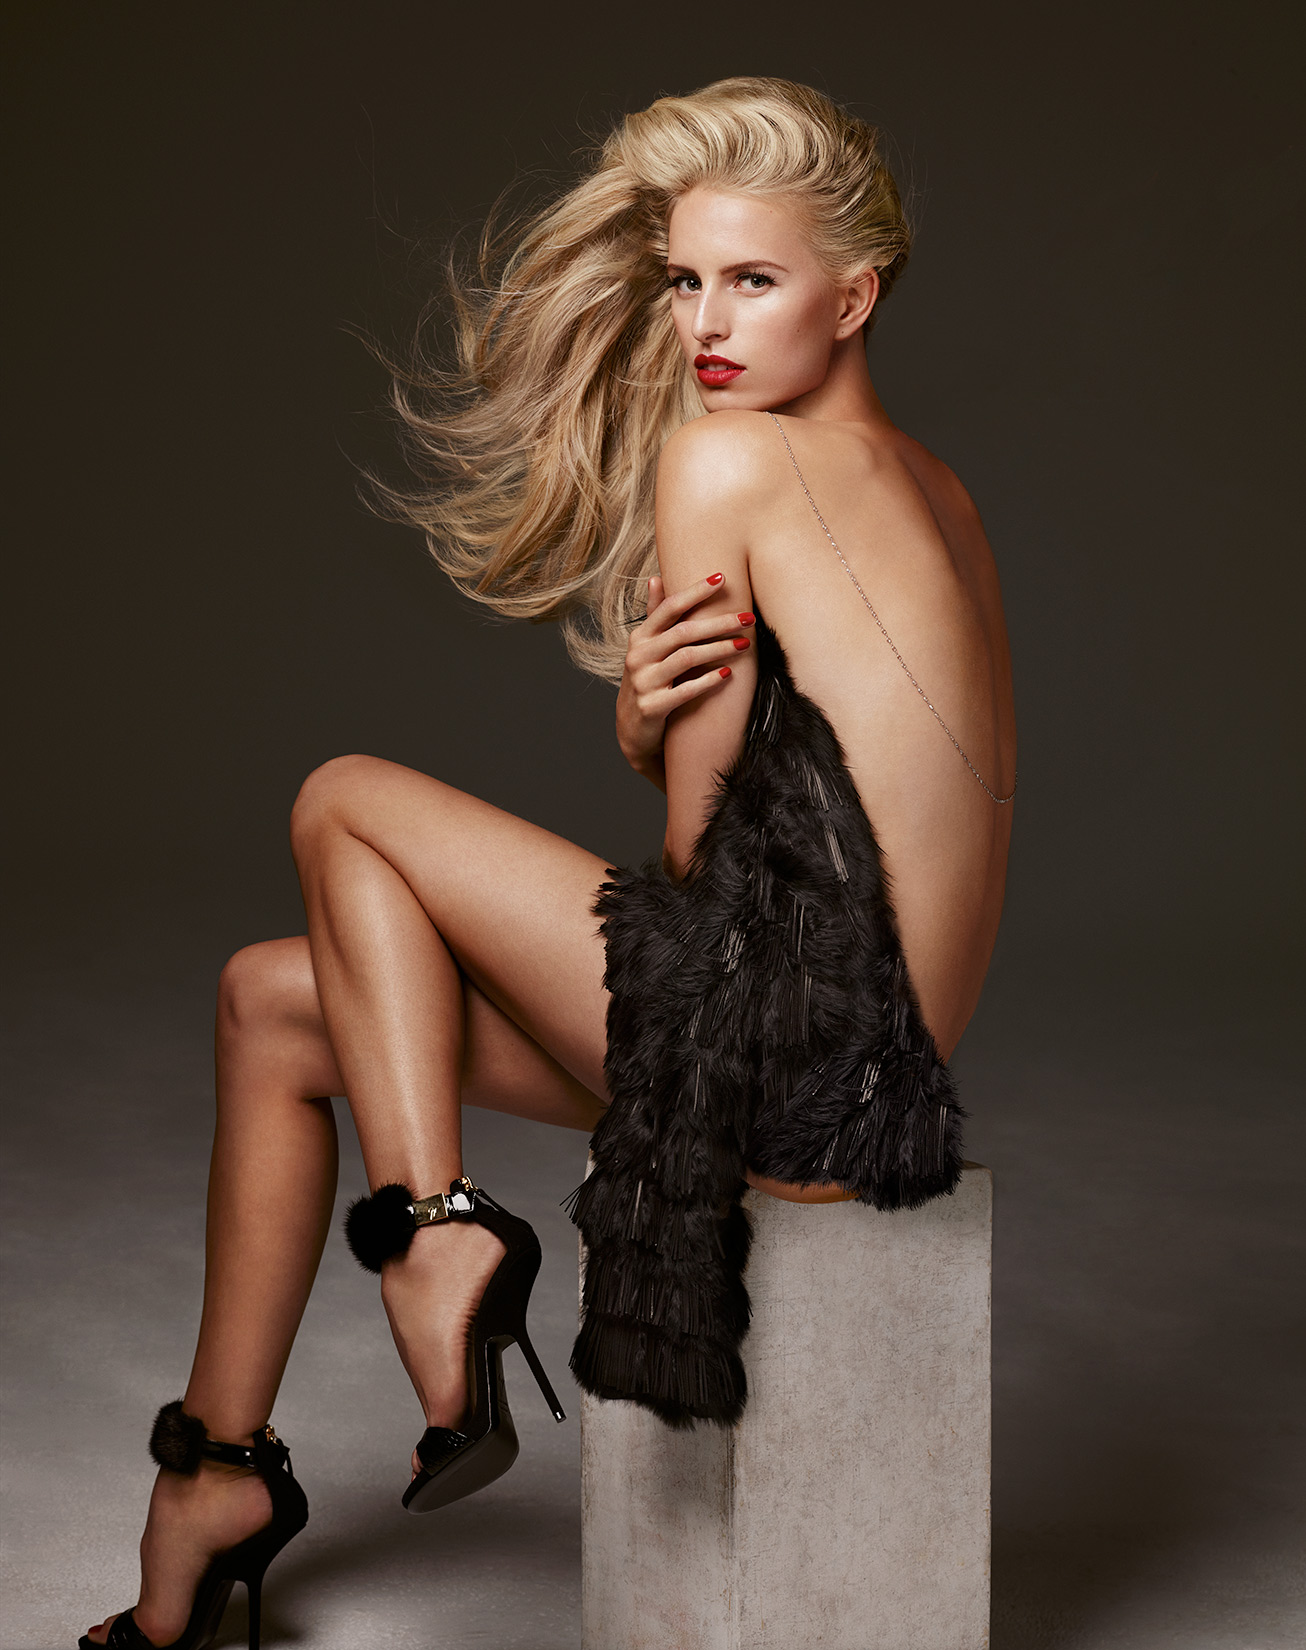 Karolina-Kurkova-by-Robert-Ascroft